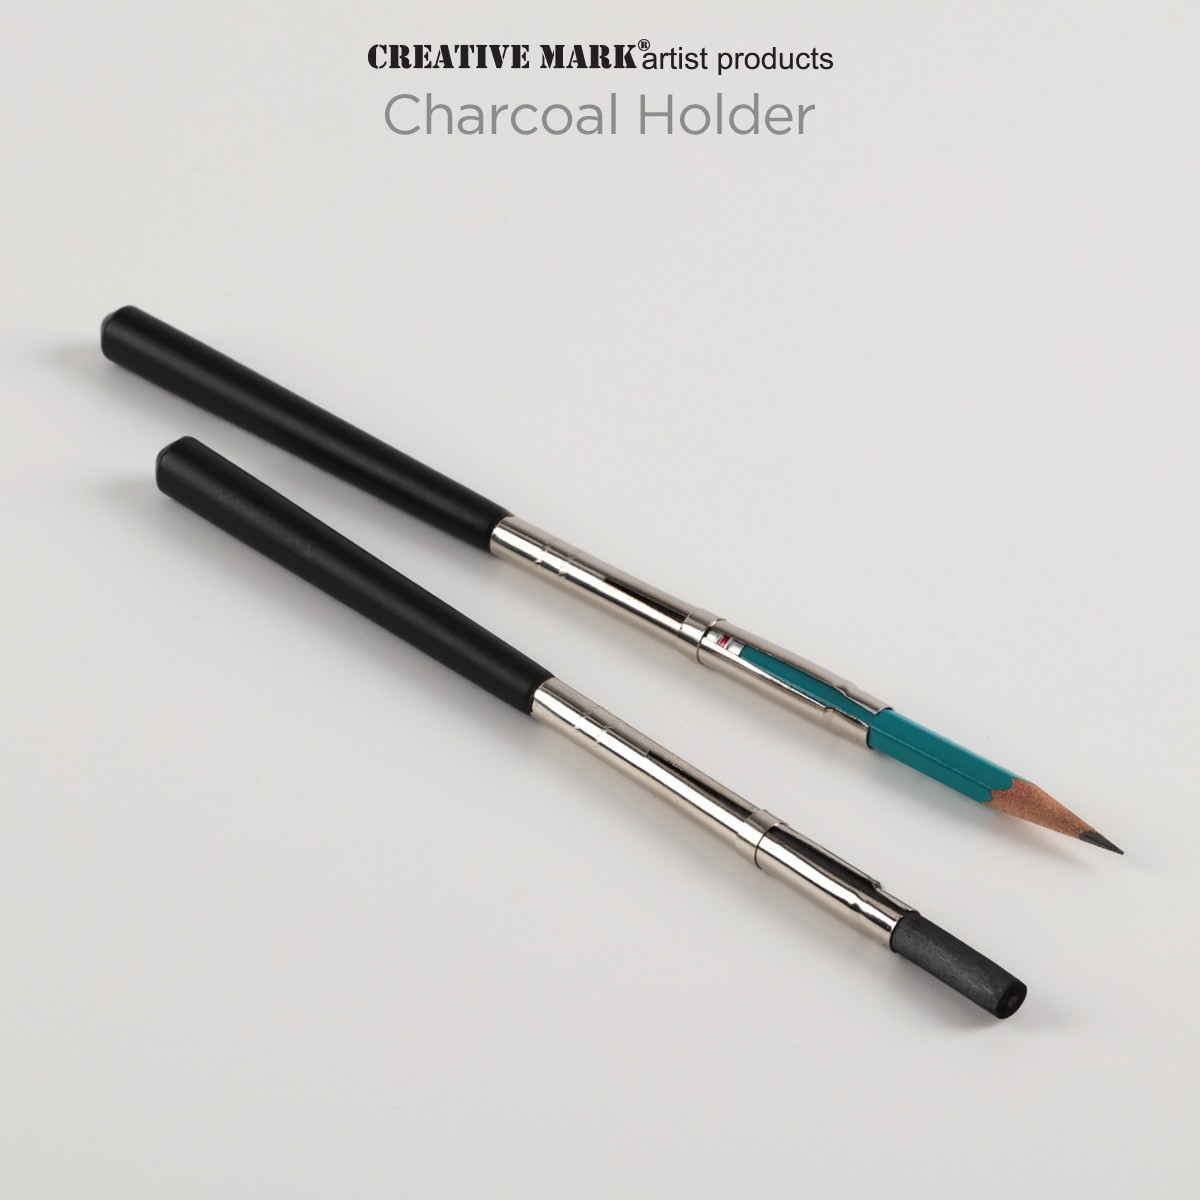 Creative Mark Charcoal Holder